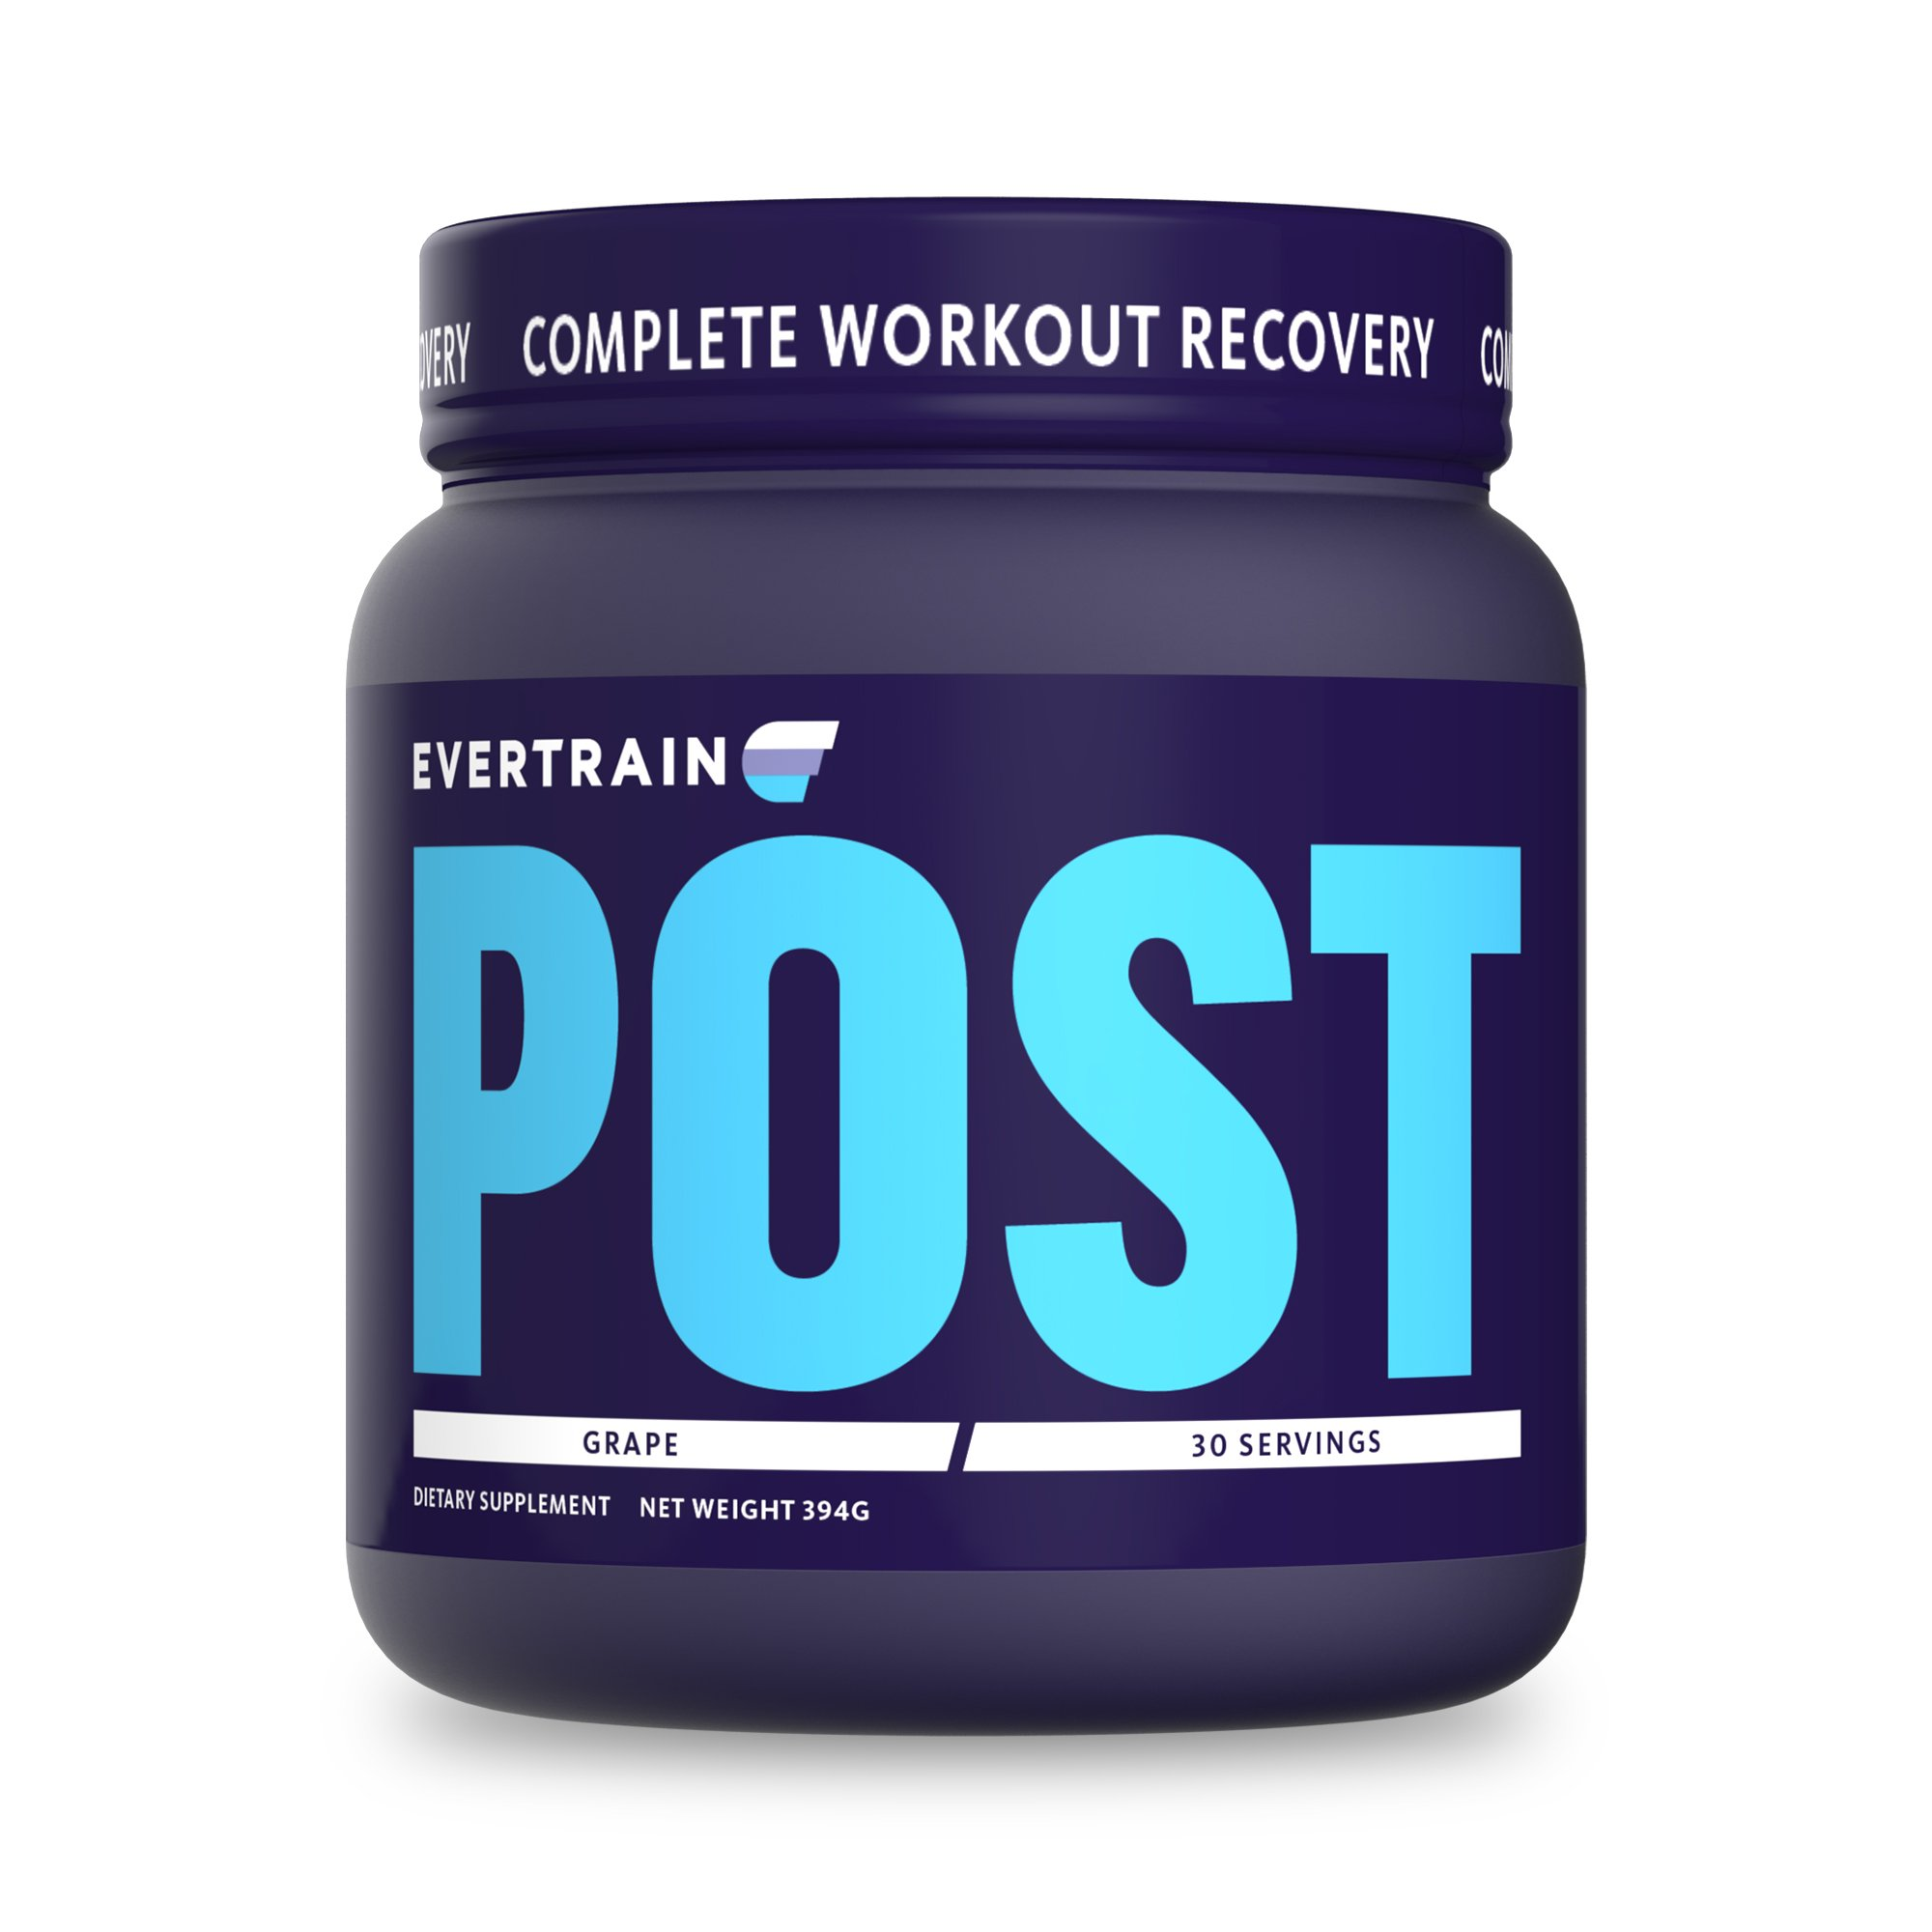 EVERTRAIN POST - Premium Clean Post Workout Recovery Powder With Natural Flavors and Colors - Muscle Repair, Decreased Inflammation, Reduced Recovery Time - Vegan Friendly - Grape - 30 Servings